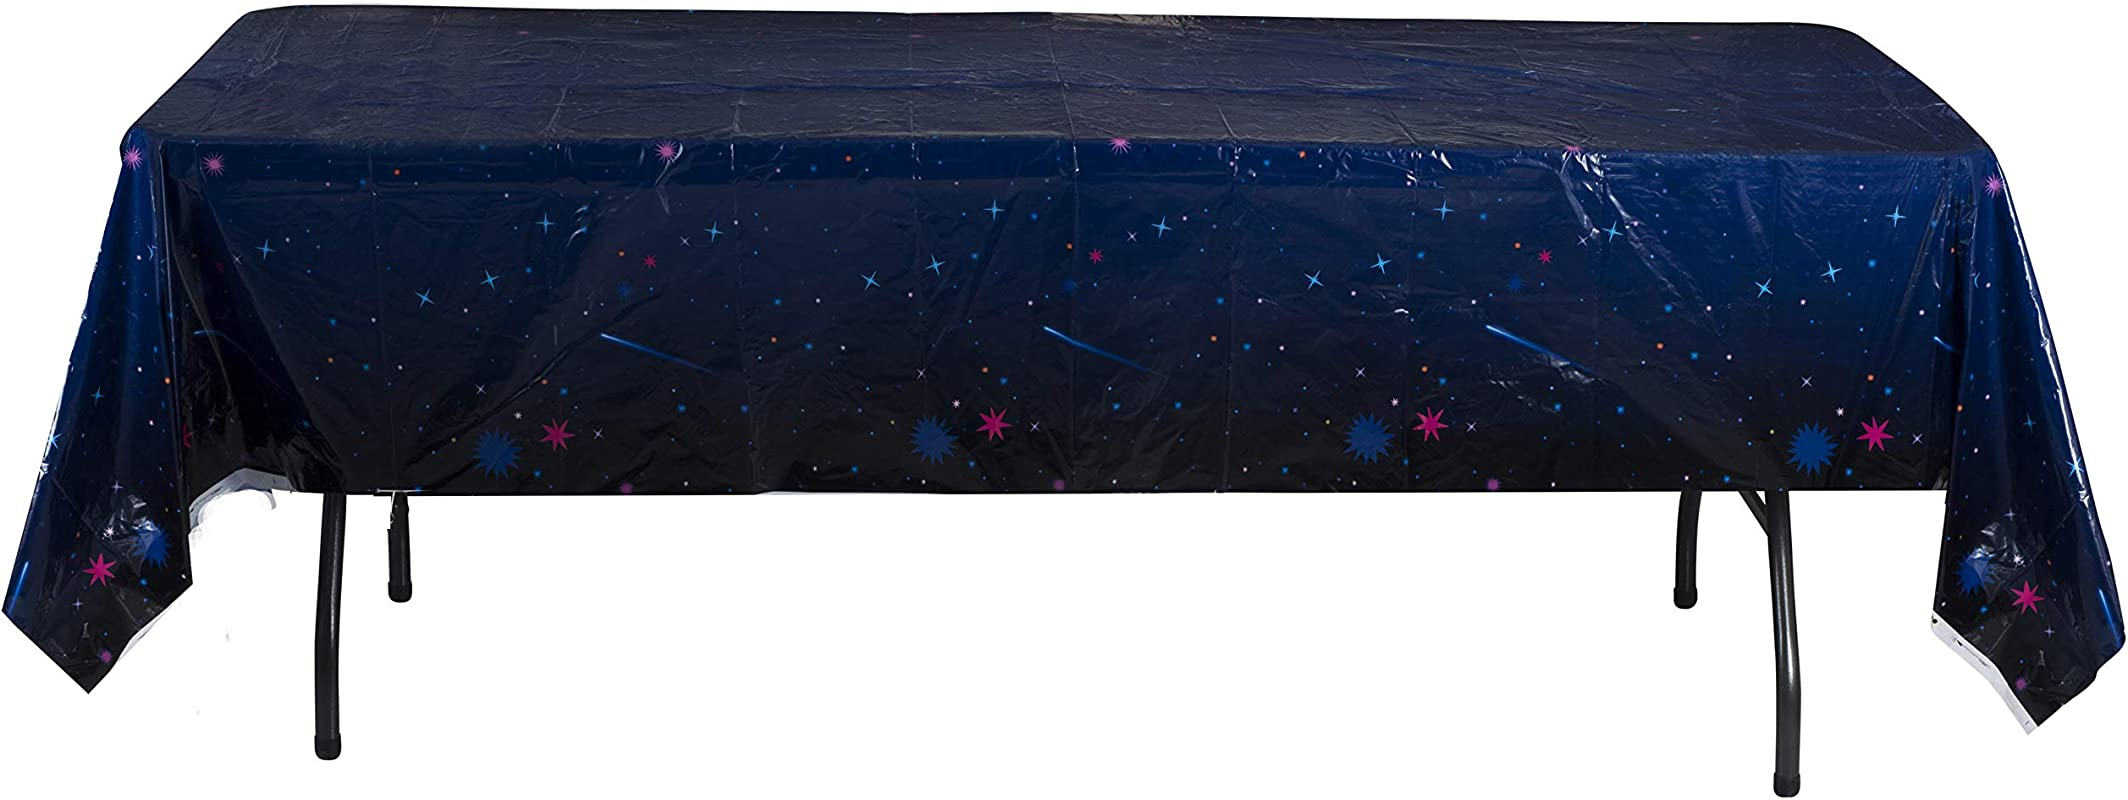 Hammont Galaxy Stars Tablecloth 54 108 Space Decorations Table Cover Ideal For Family Dinners And Special Events 4 Pack